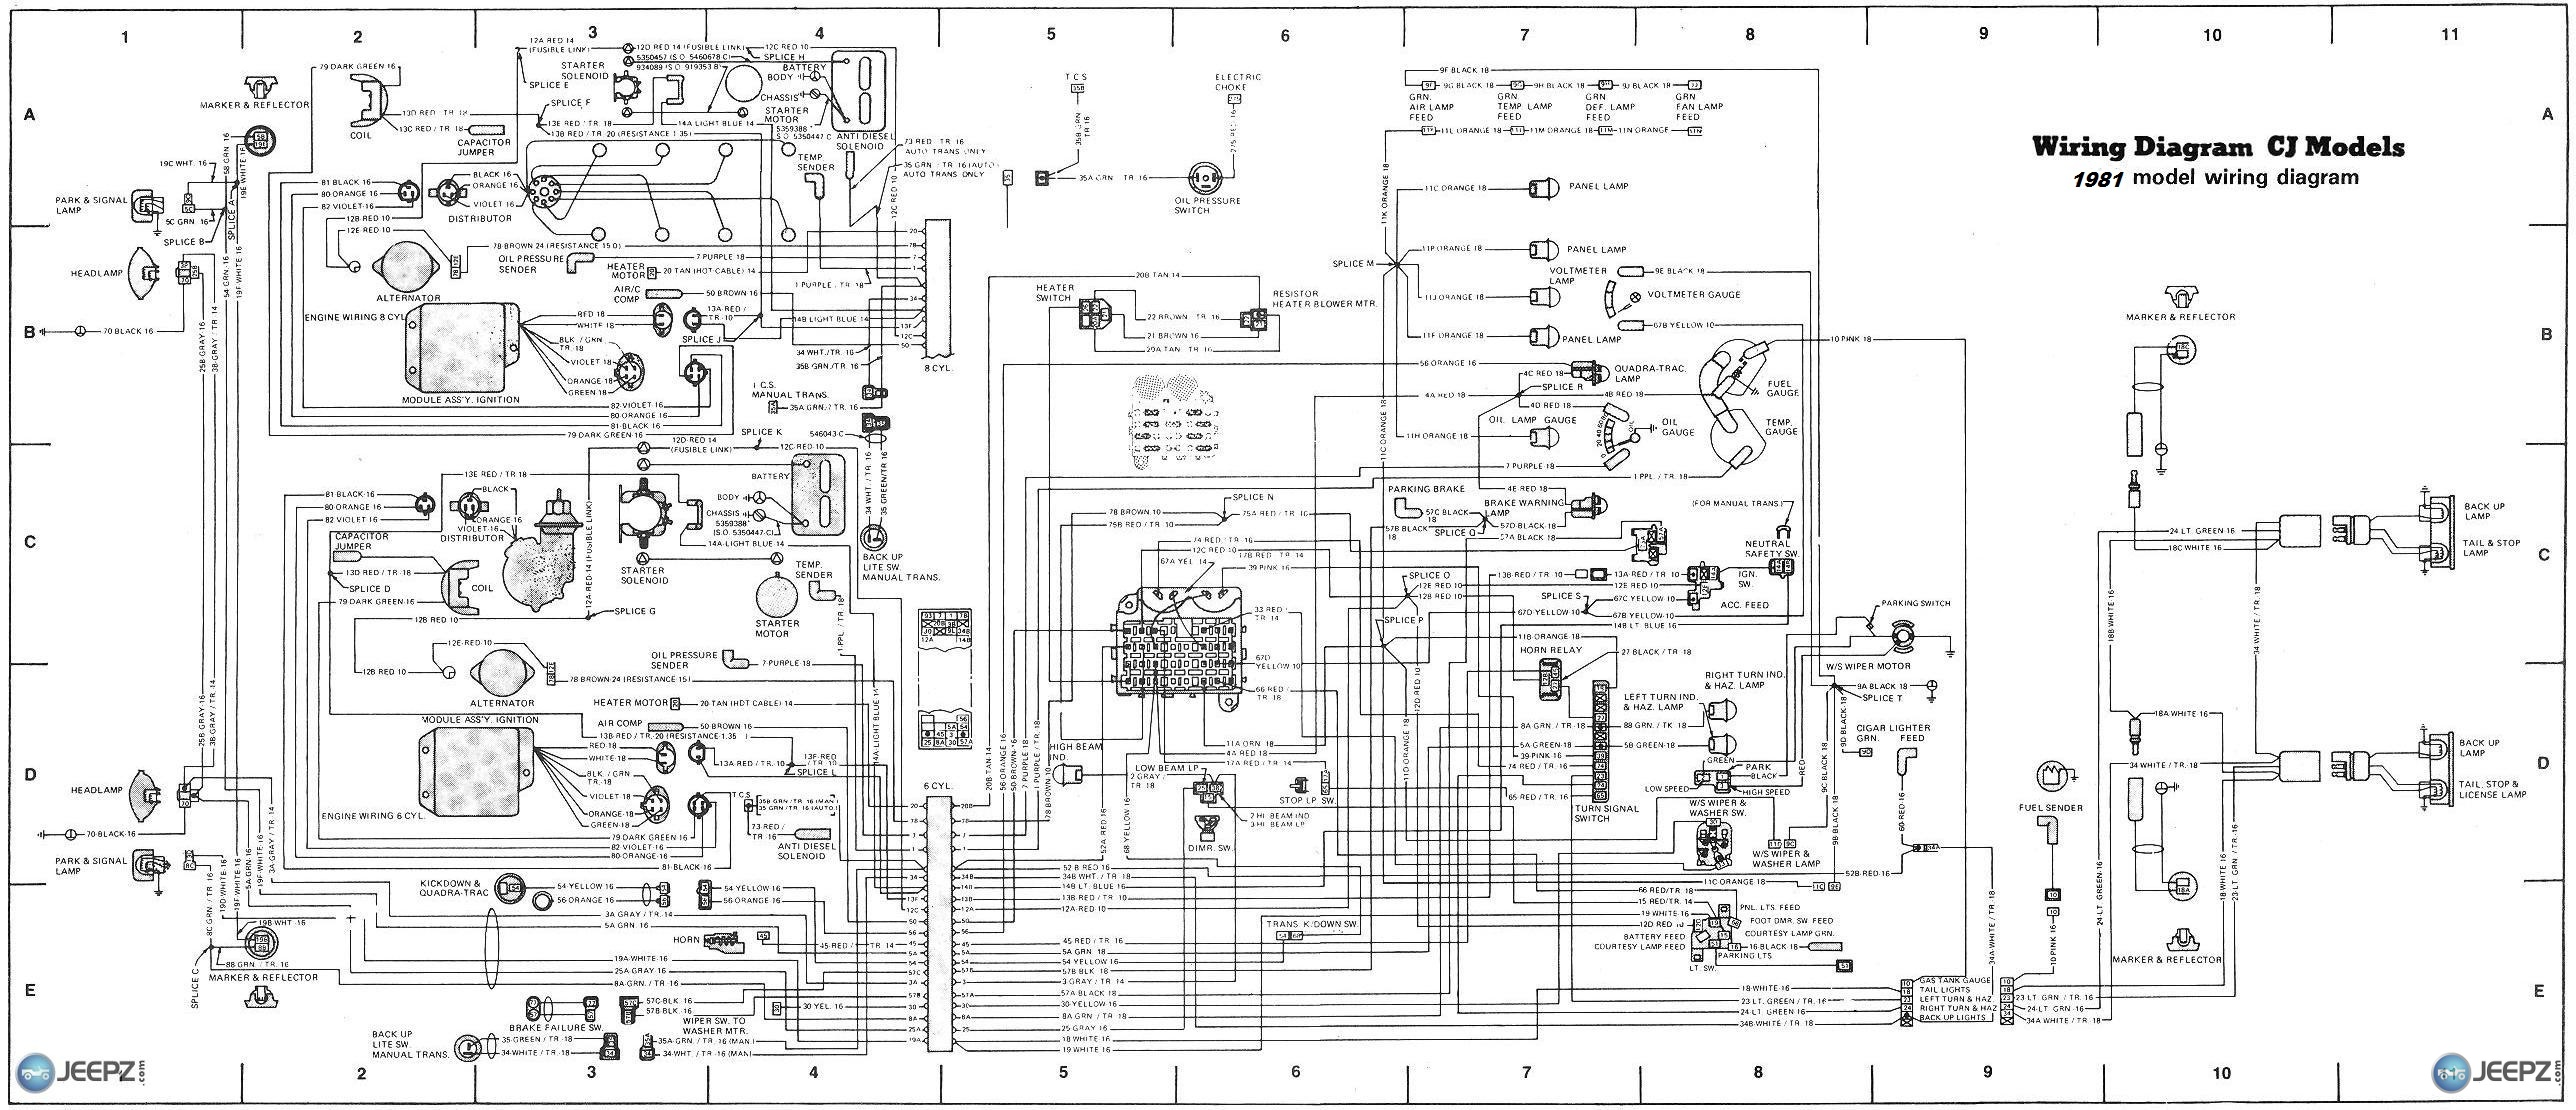 CJ 7 Wire Diagram